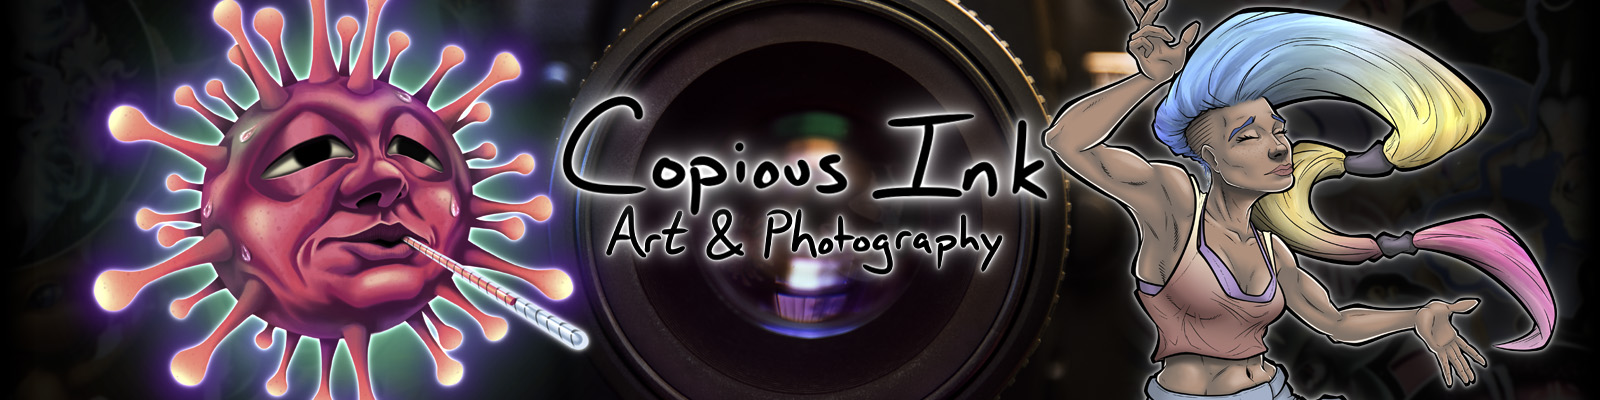 Banner for Copious Ink website featuring a camera lens and illustrations.